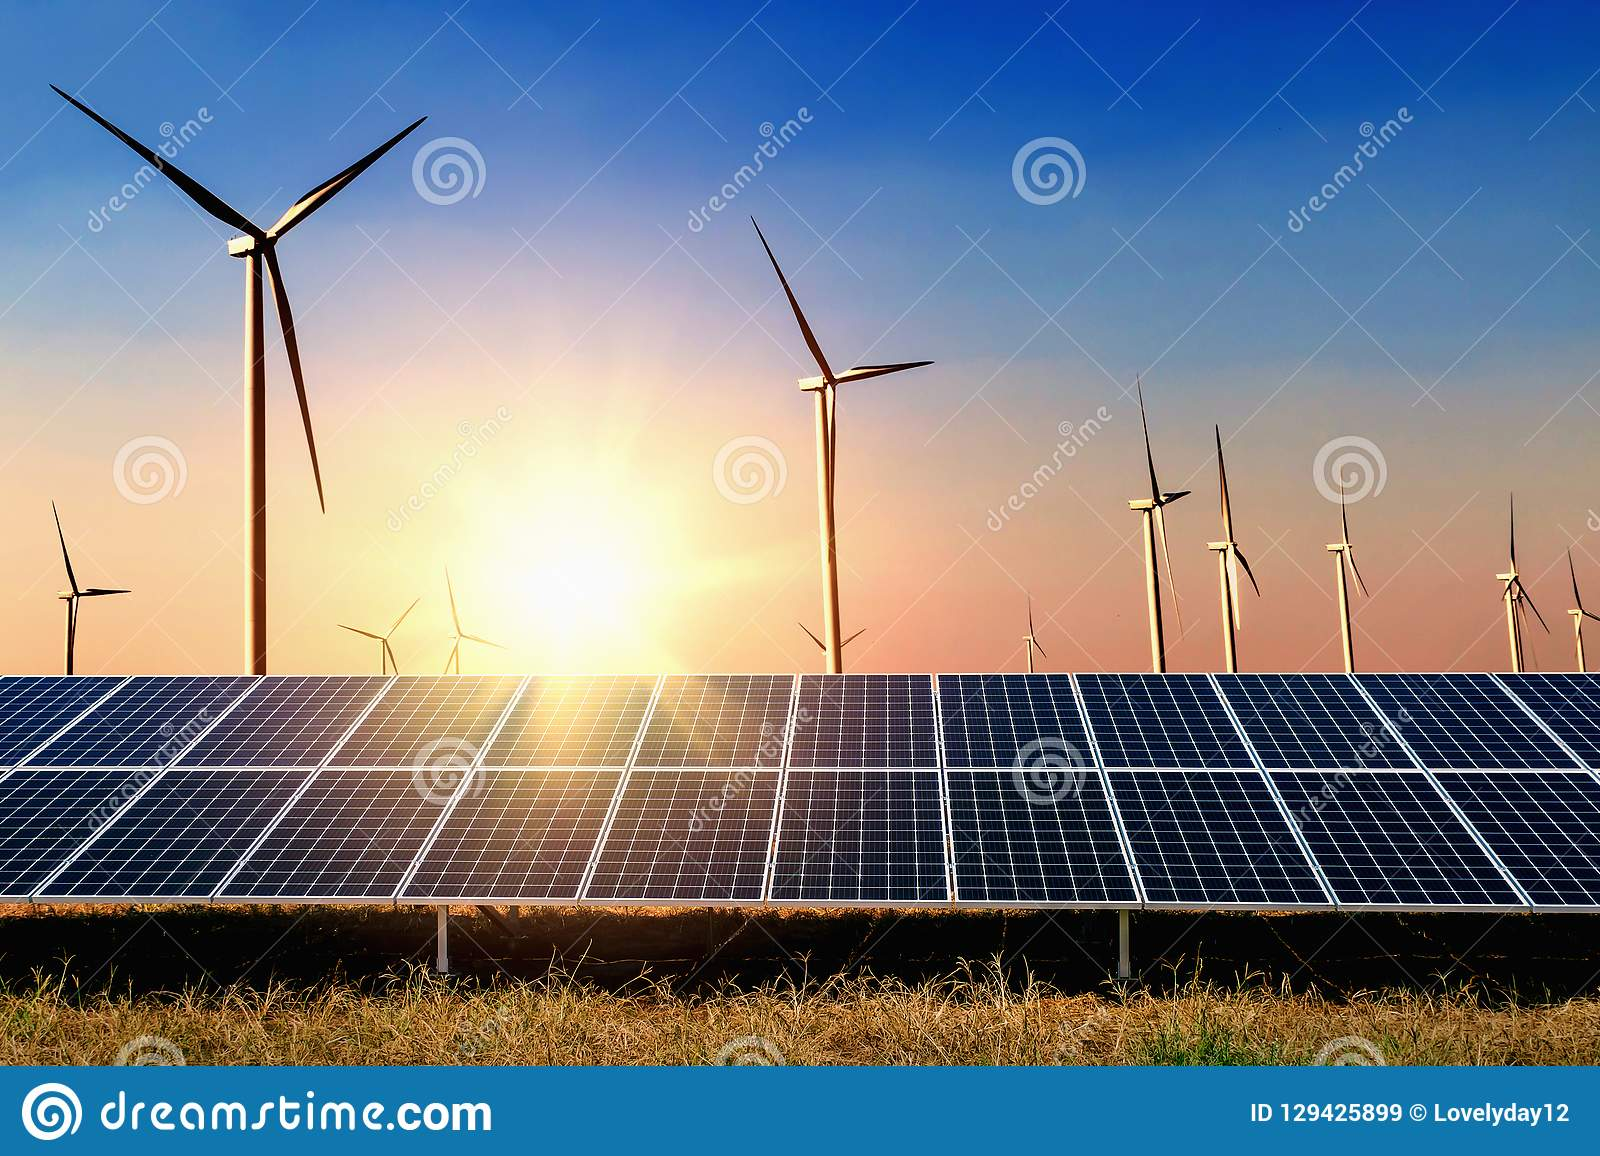 solar panel with turbine and sunset blue sky background. concept